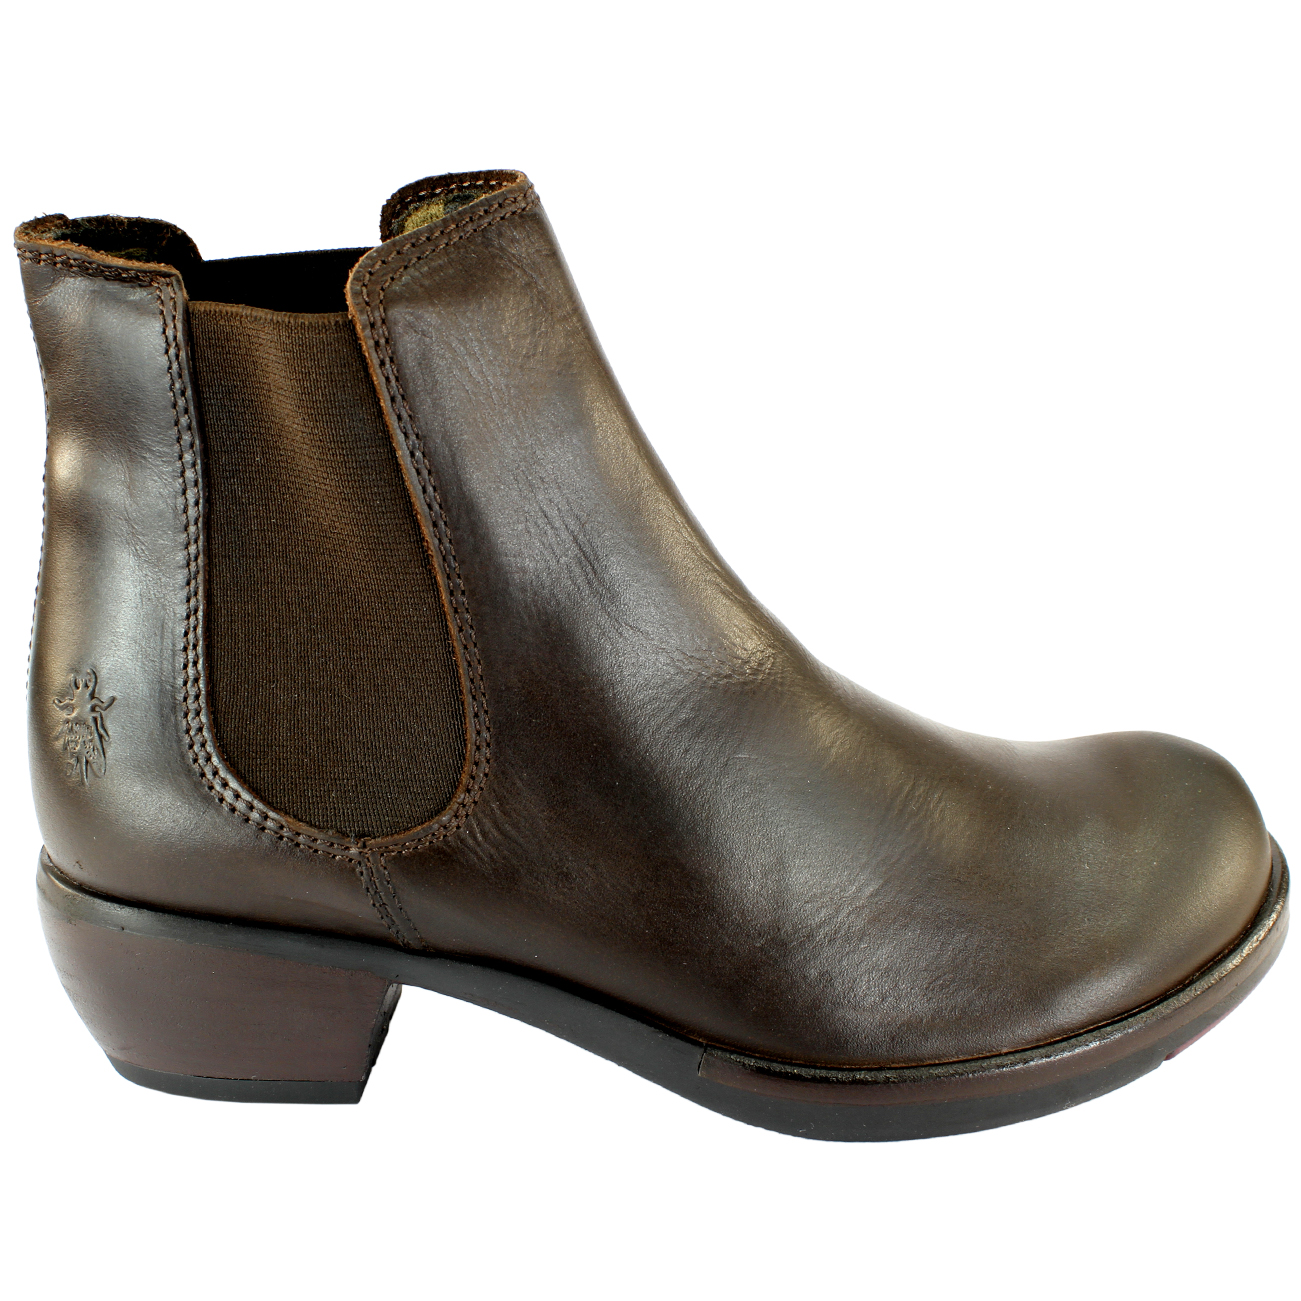 Mujeres-Fly-London-Make-Tacon-Bajo-Tiro-Elastica-Chelsea-Botas-36-41